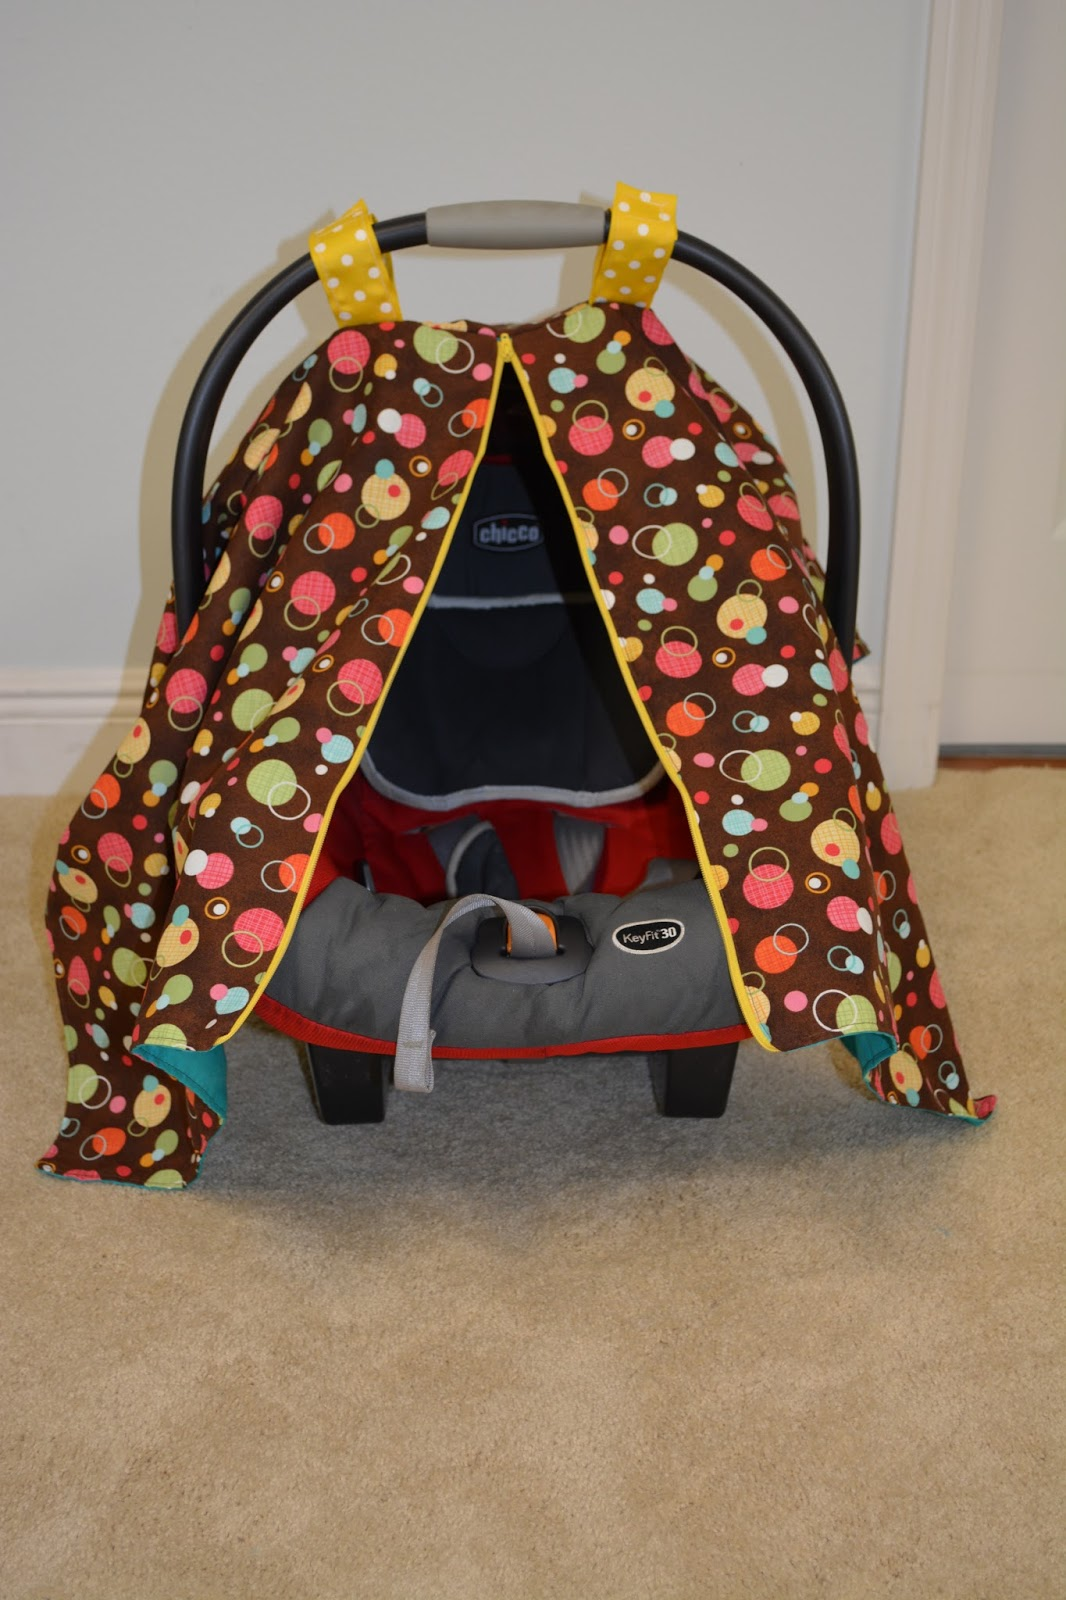 & Zippered Car seat Canopy Tutorial |Naturally Crafty Mom